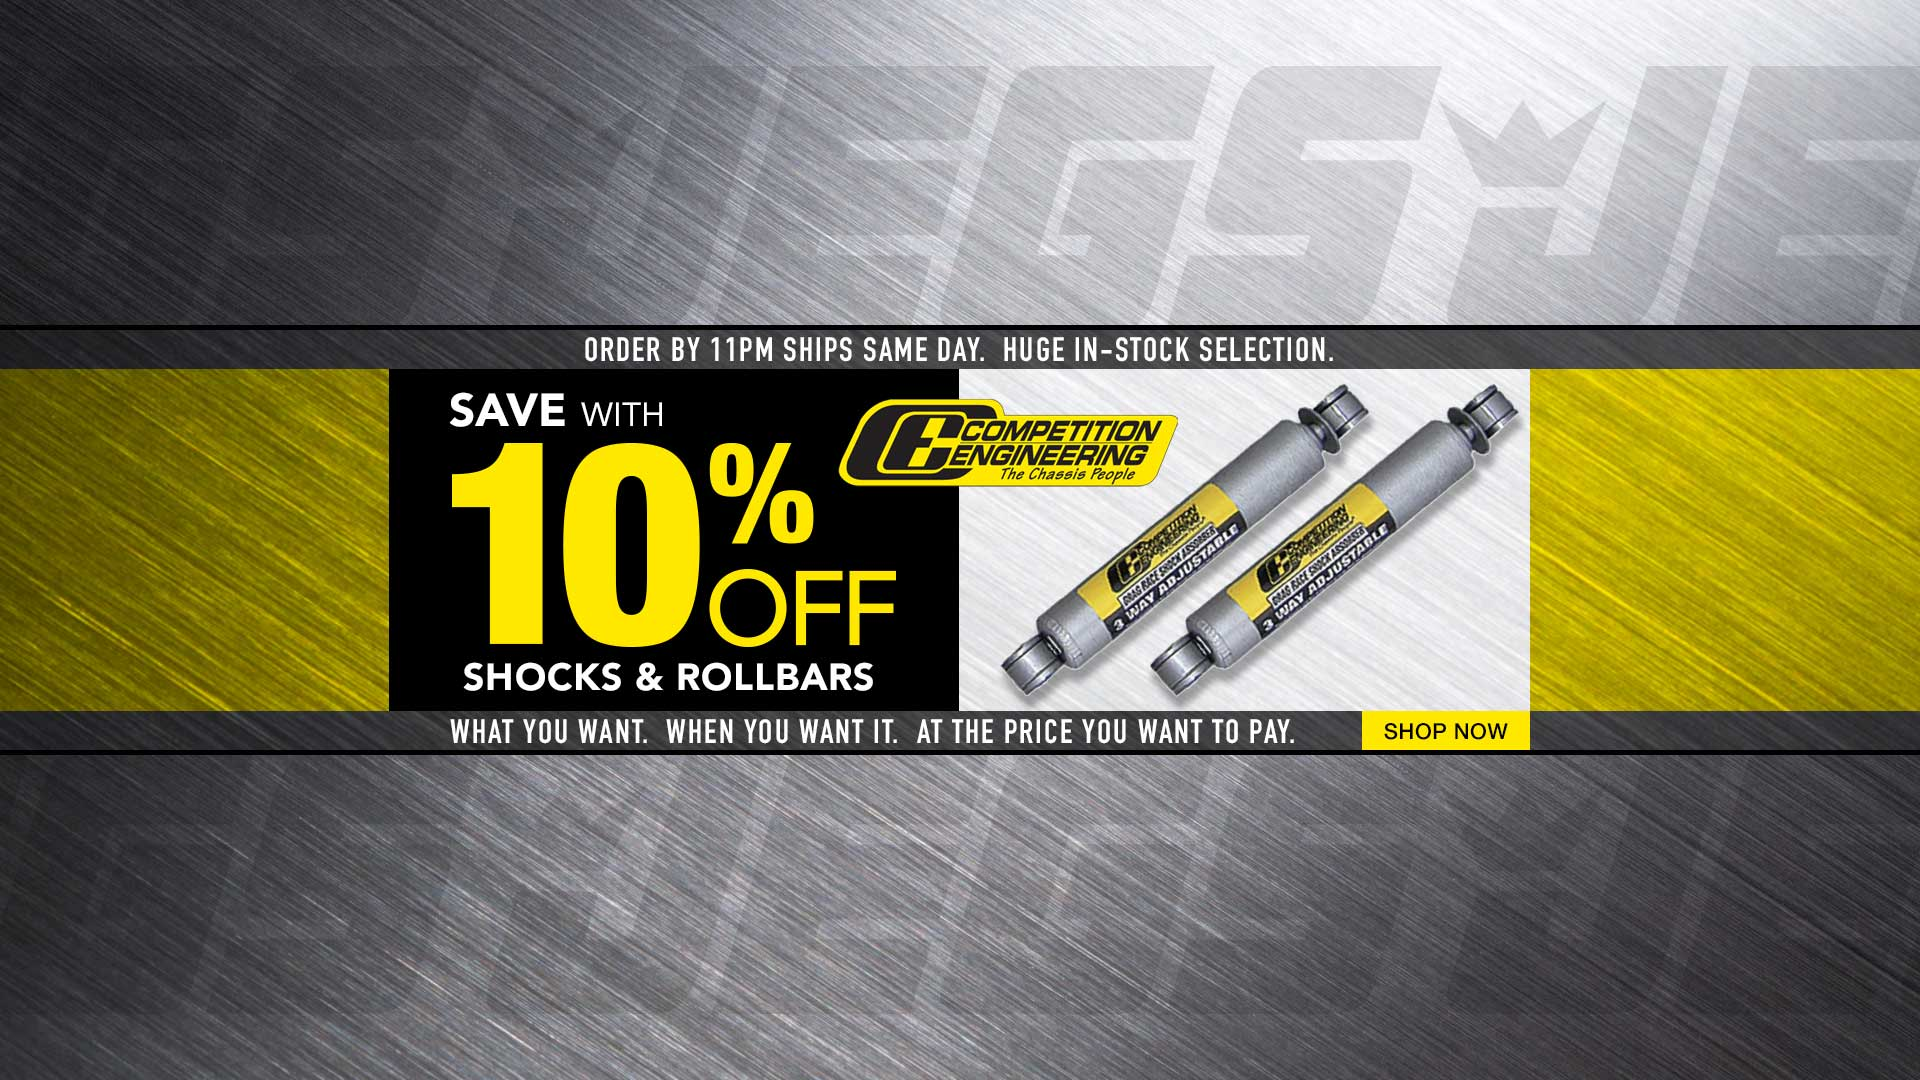 Save 10% off Competition Engineering Shocks & Roll Bars